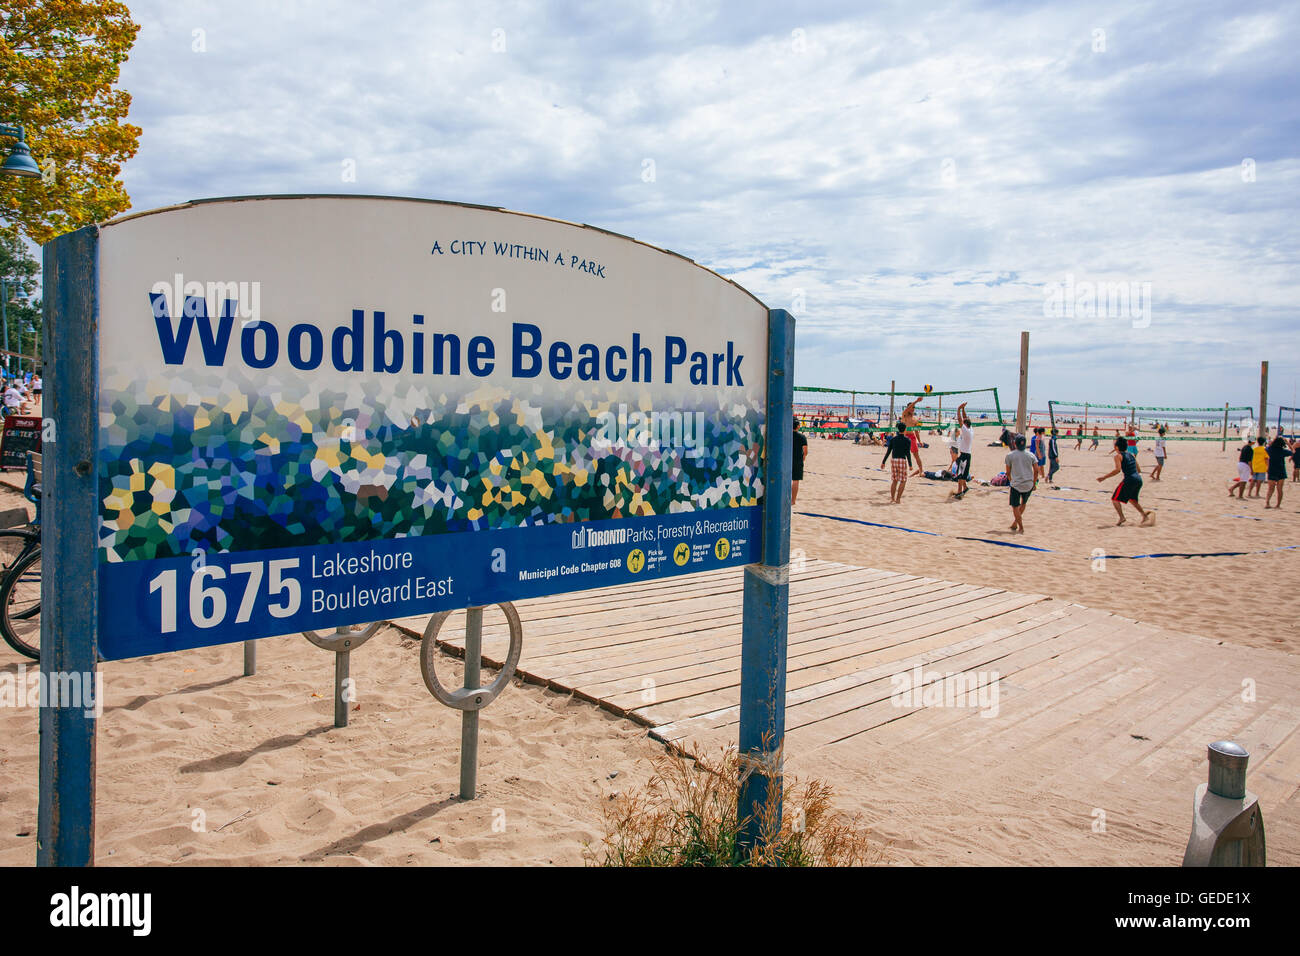 toronto woodbine beach park stock photo 112163798 alamy. Black Bedroom Furniture Sets. Home Design Ideas